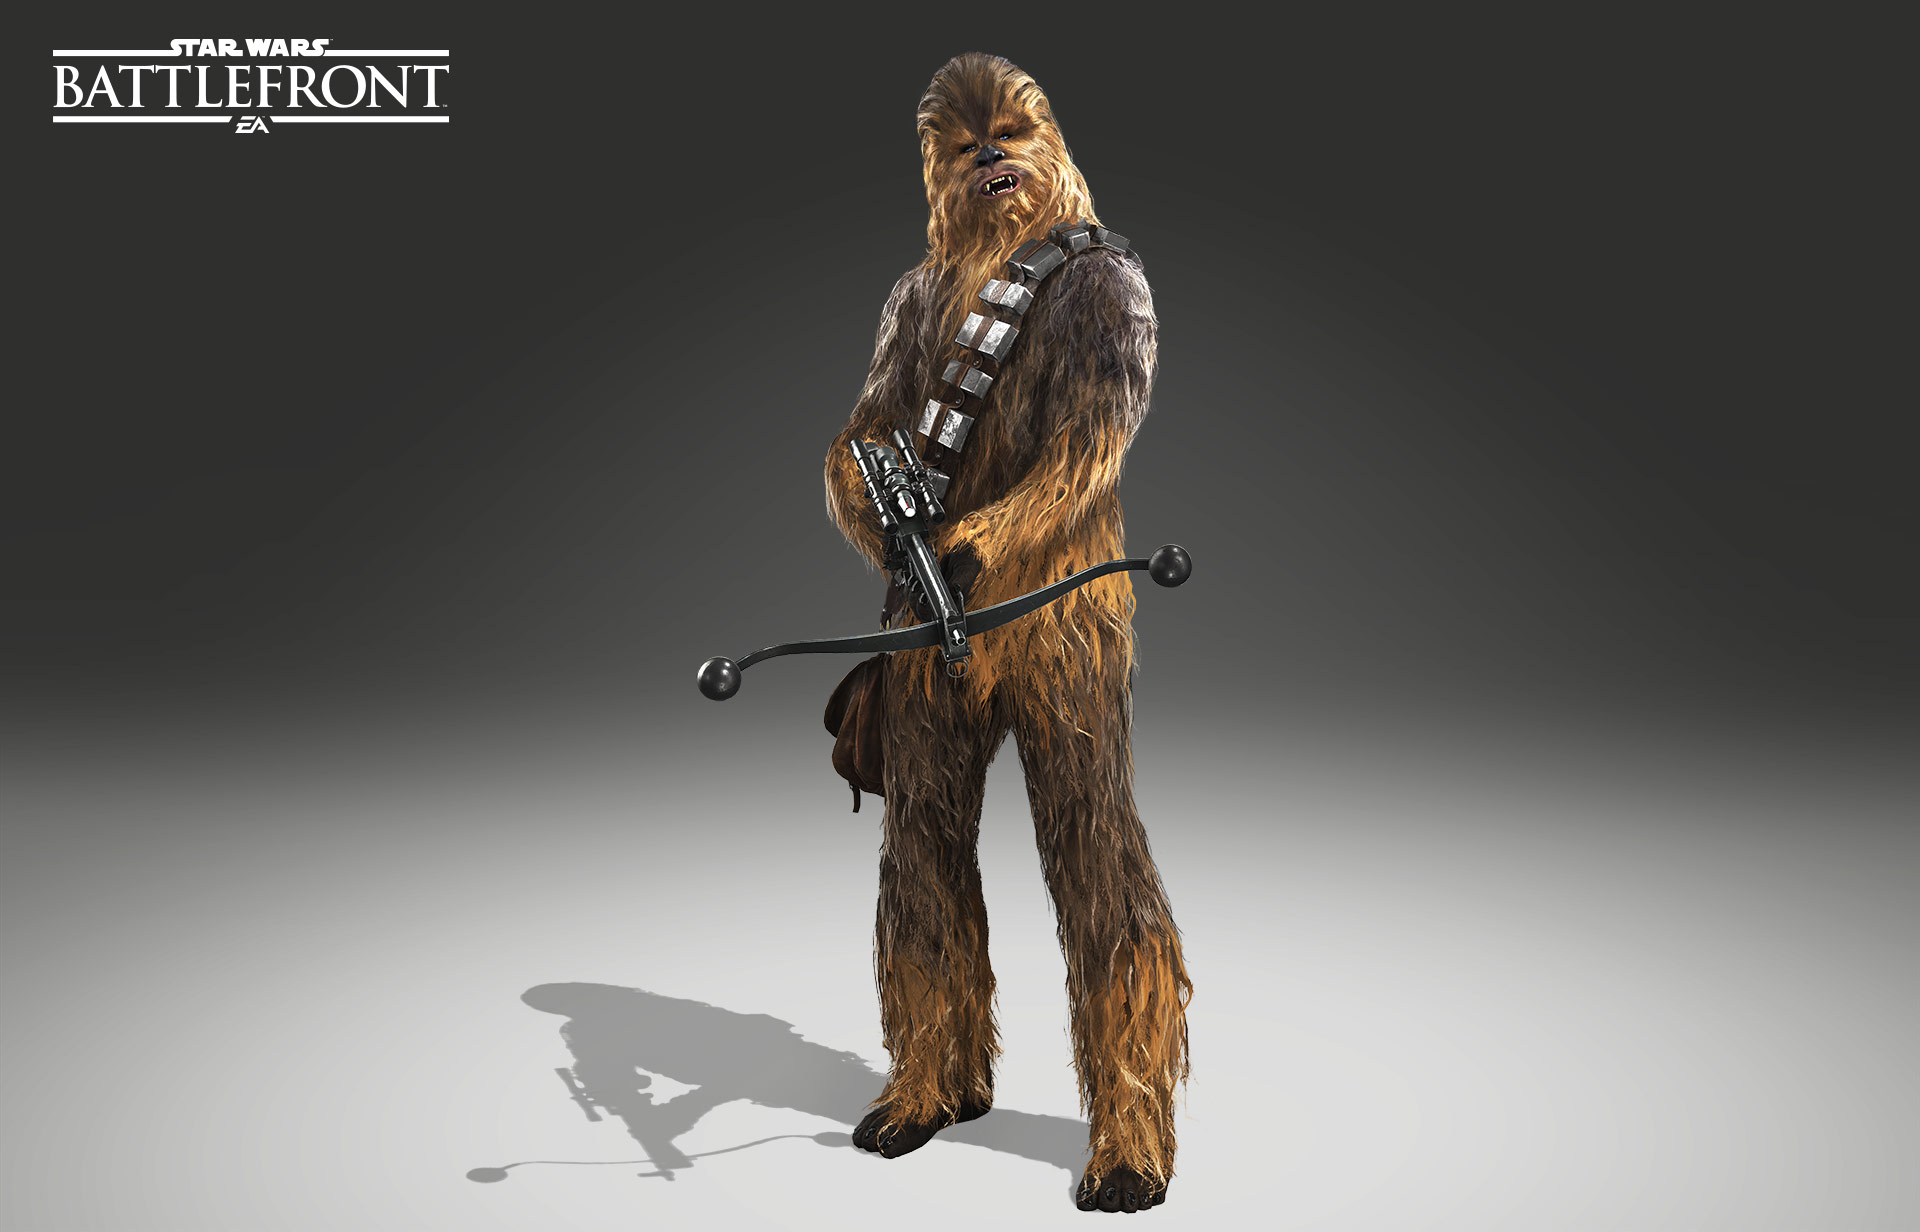 star wars battlefront 39 s chewbacca is the best completely fur clad character ever made all. Black Bedroom Furniture Sets. Home Design Ideas